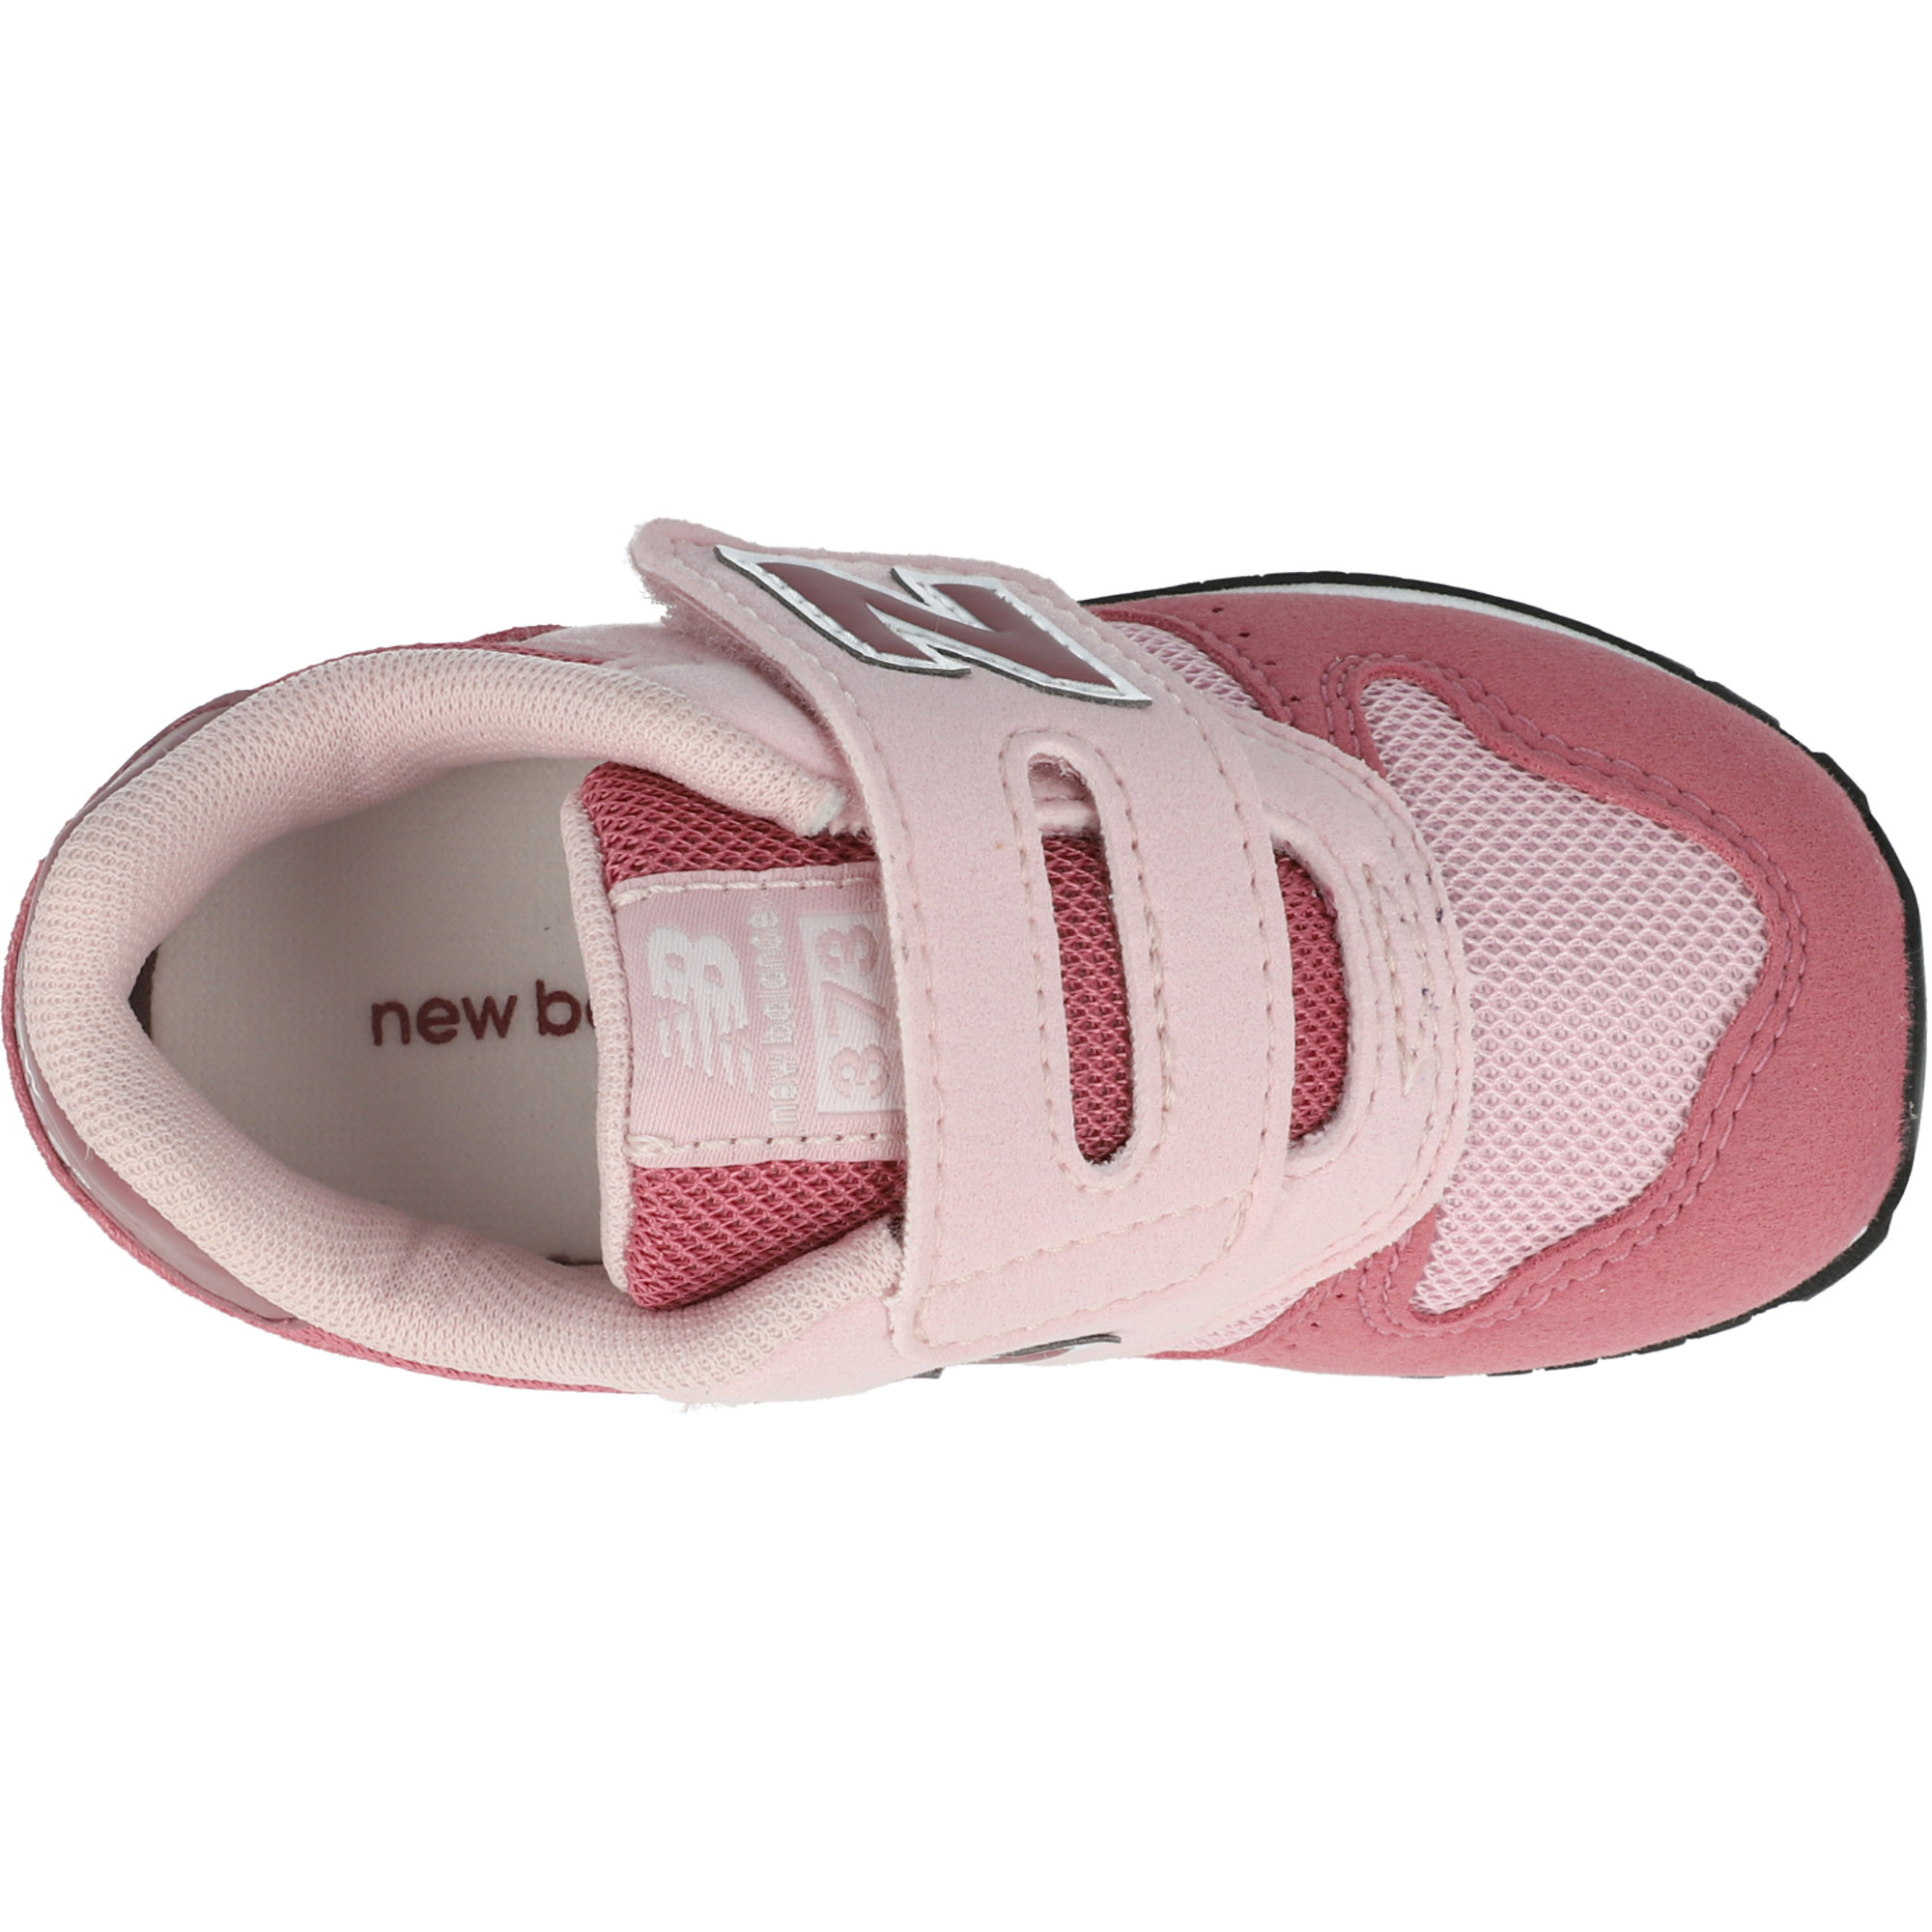 New Balance 373 Madder Rose/Navajo Rose Suede Infant